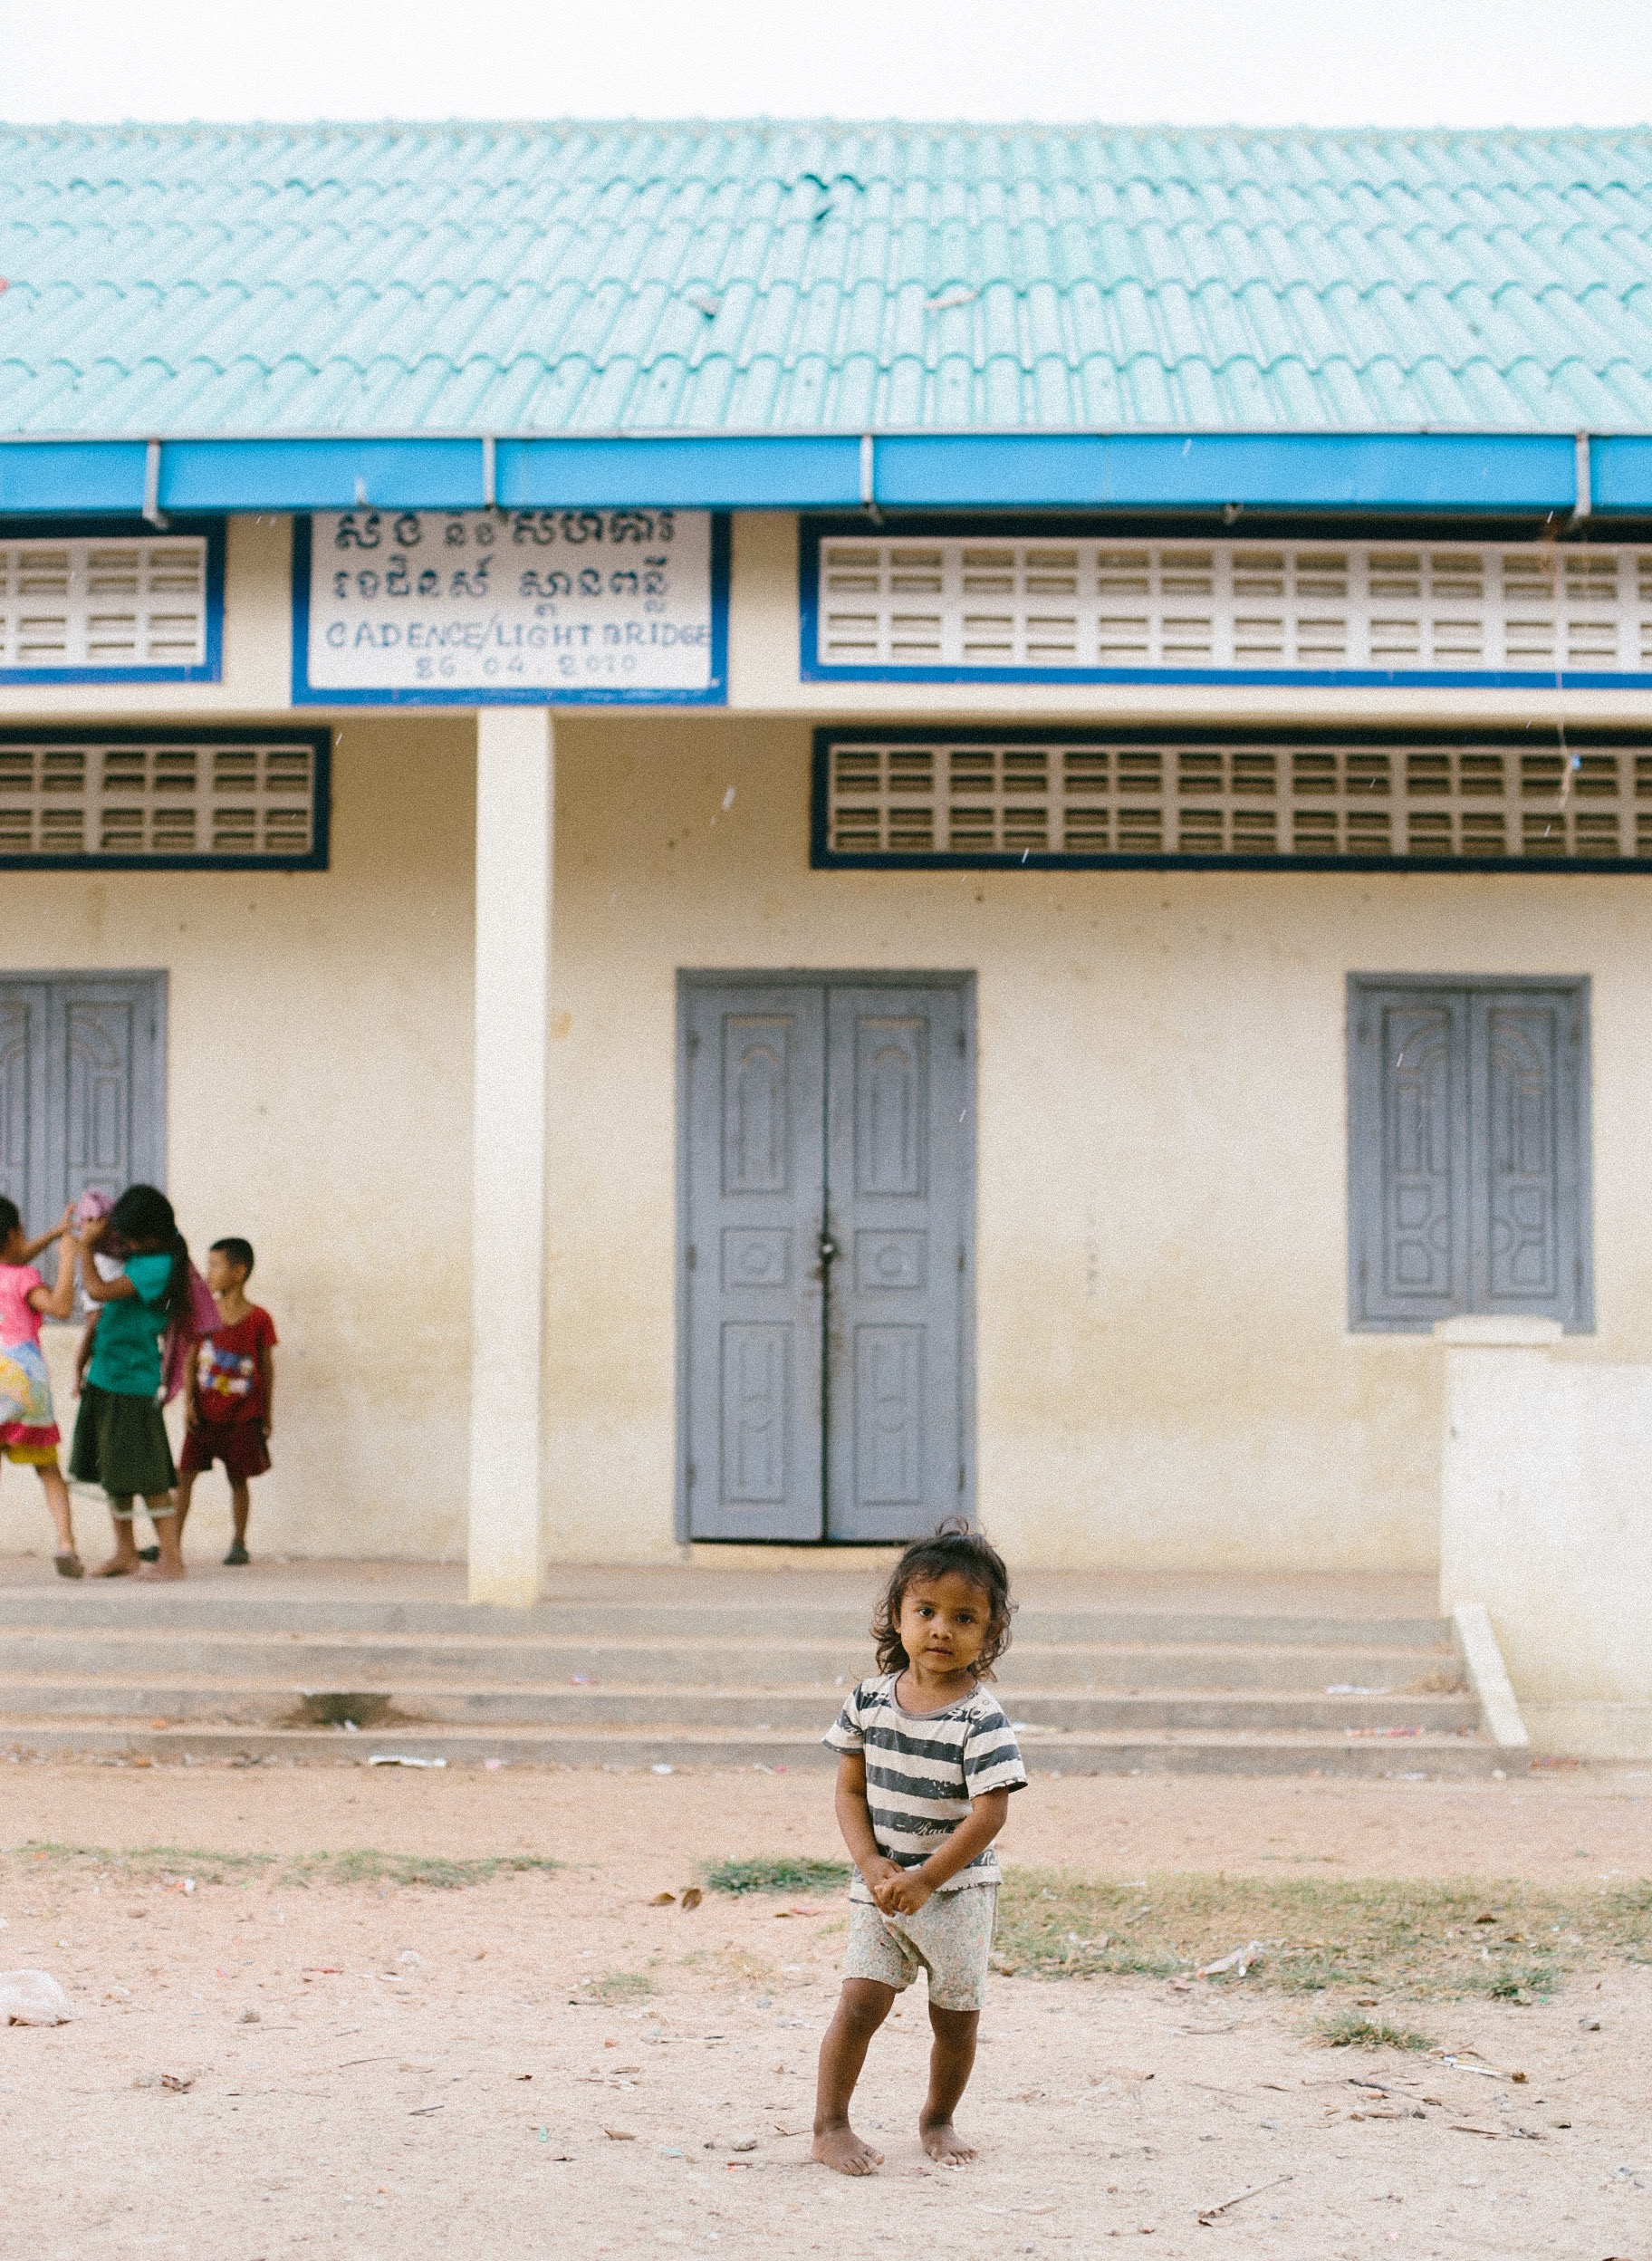 One of the sweetie-pies in front of the current school building...she will begin school in the next year or two!